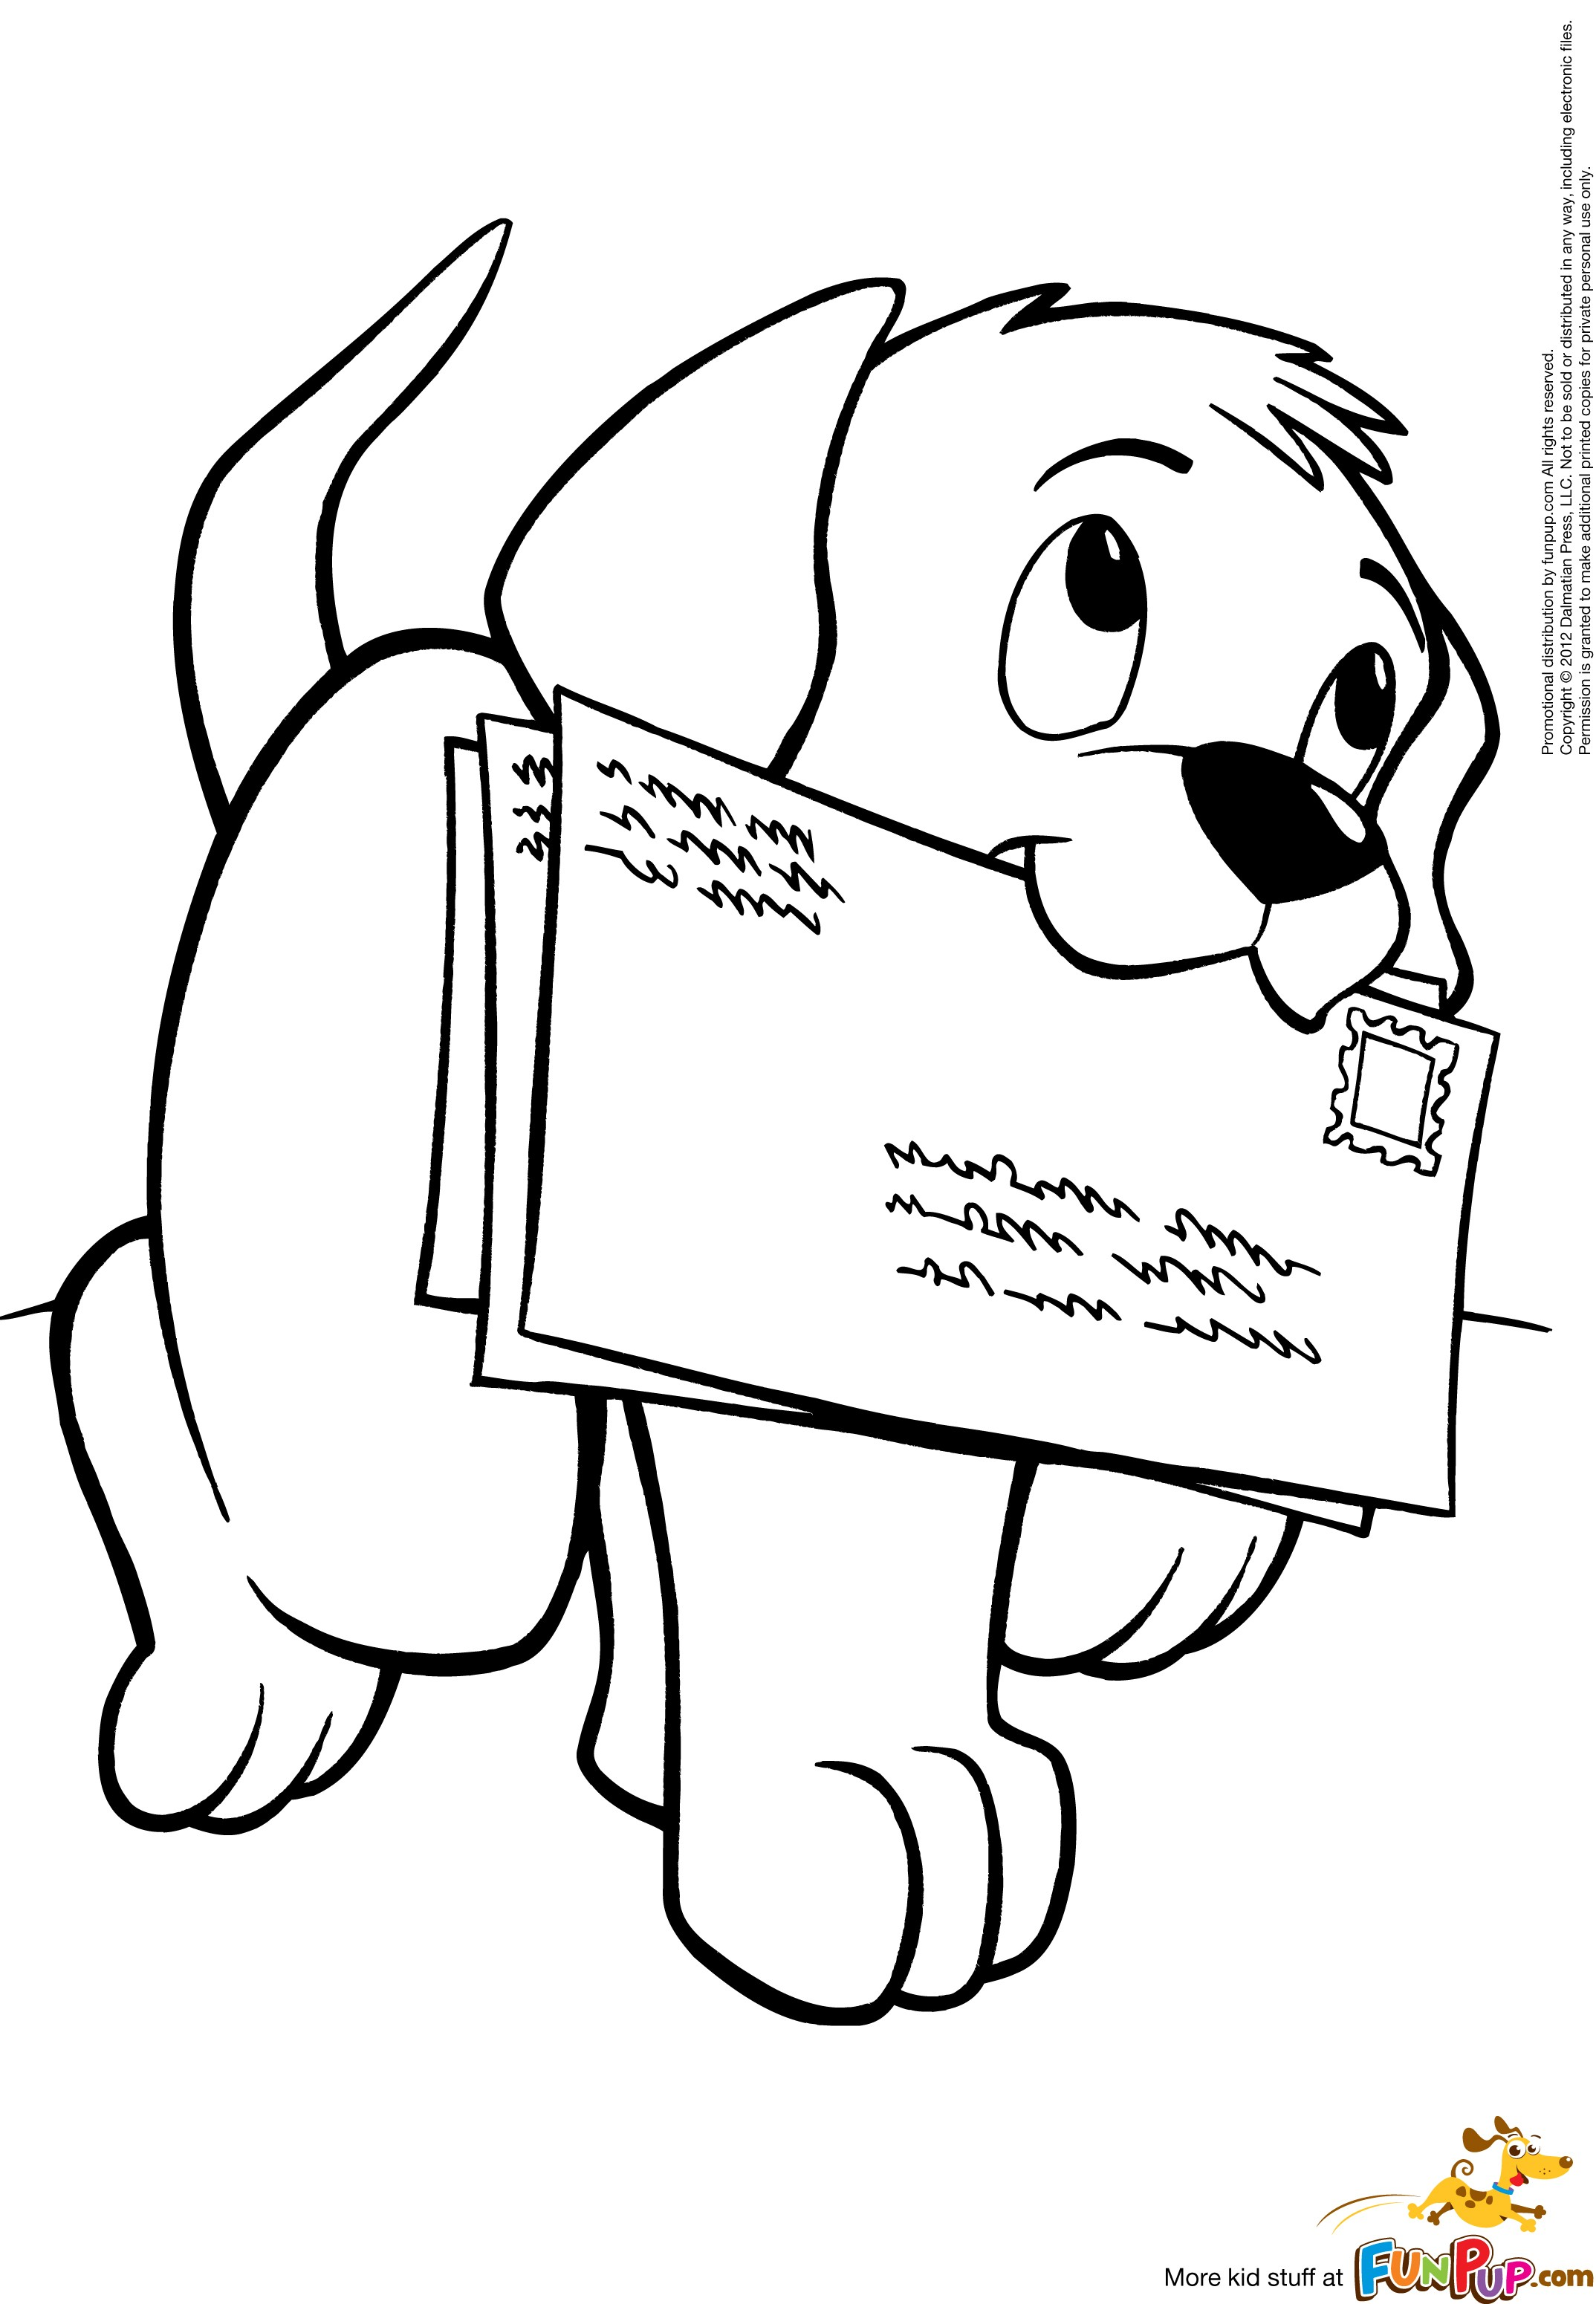 2148x3101 Breakthrough Puppy Colouring Sheets Print Pict